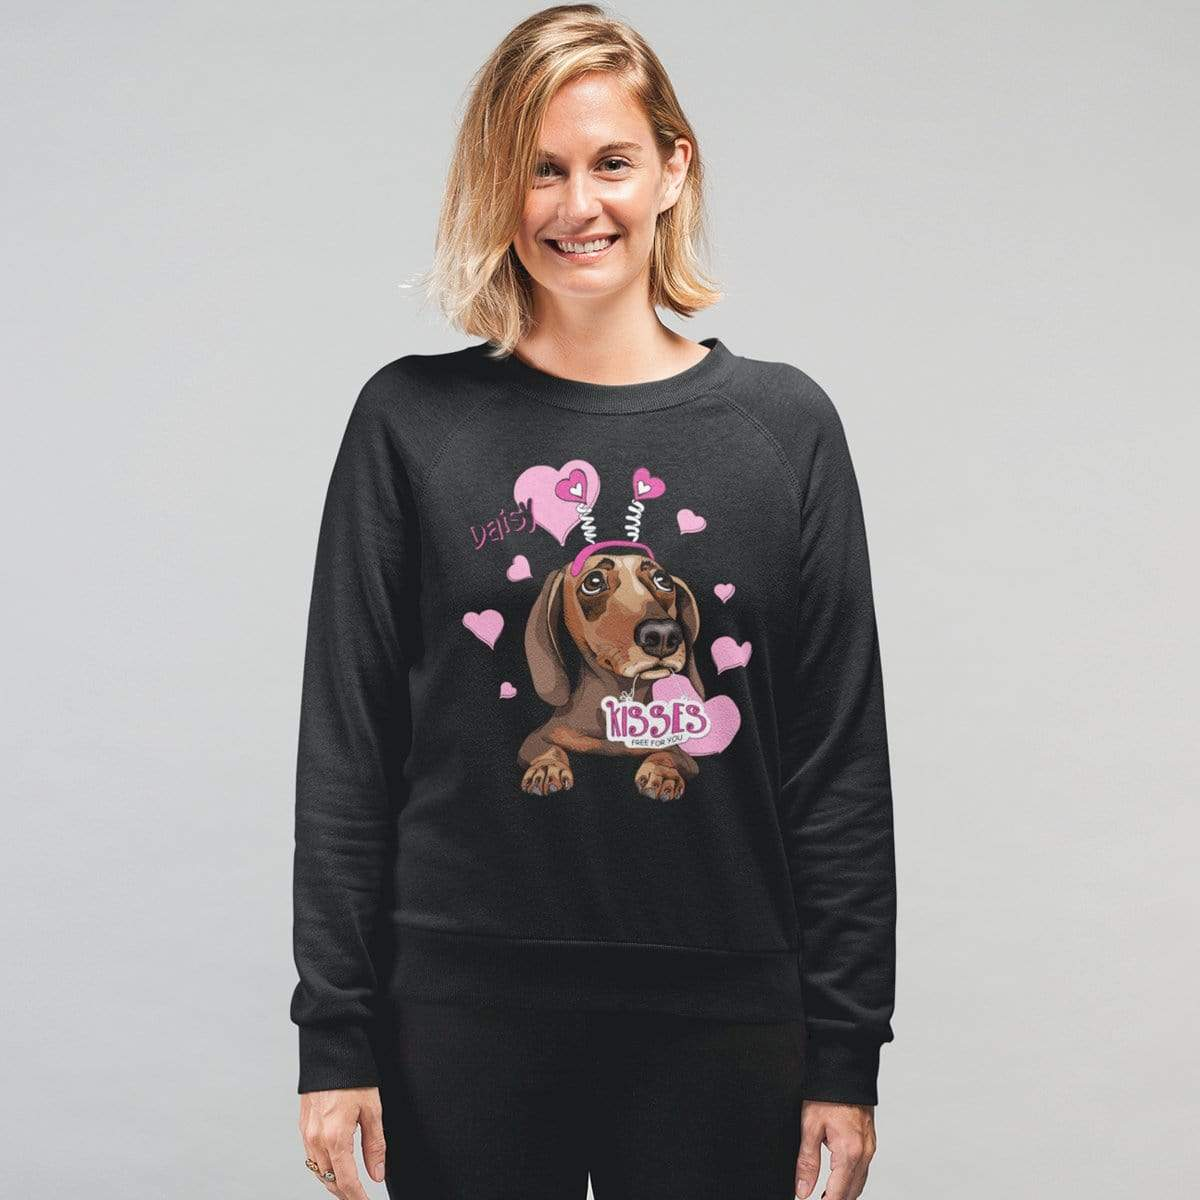 Personalized Dog Mom Gifts By Pupnpaws Cotton Sweatshirt Black / S Kisses For Free Customized Sweatshirt For Dog Lover